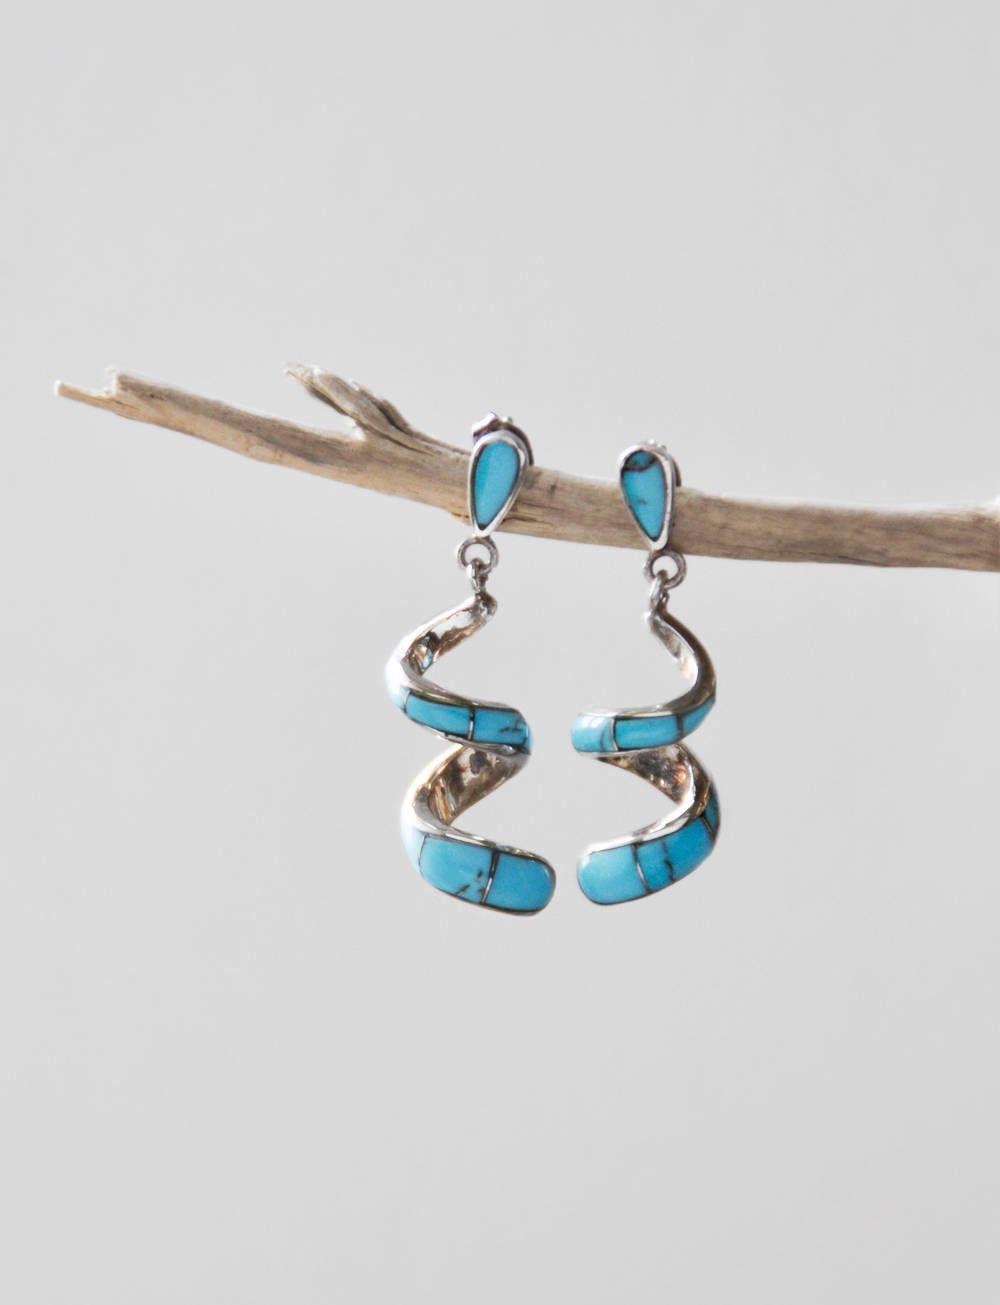 4ca0ba4d3 Vintage Zuni Spiral Turquoise Earrings - inlaid sterling silver Native  American post back teardrop studs with curly drops by CuriosityCabinet on  Etsy